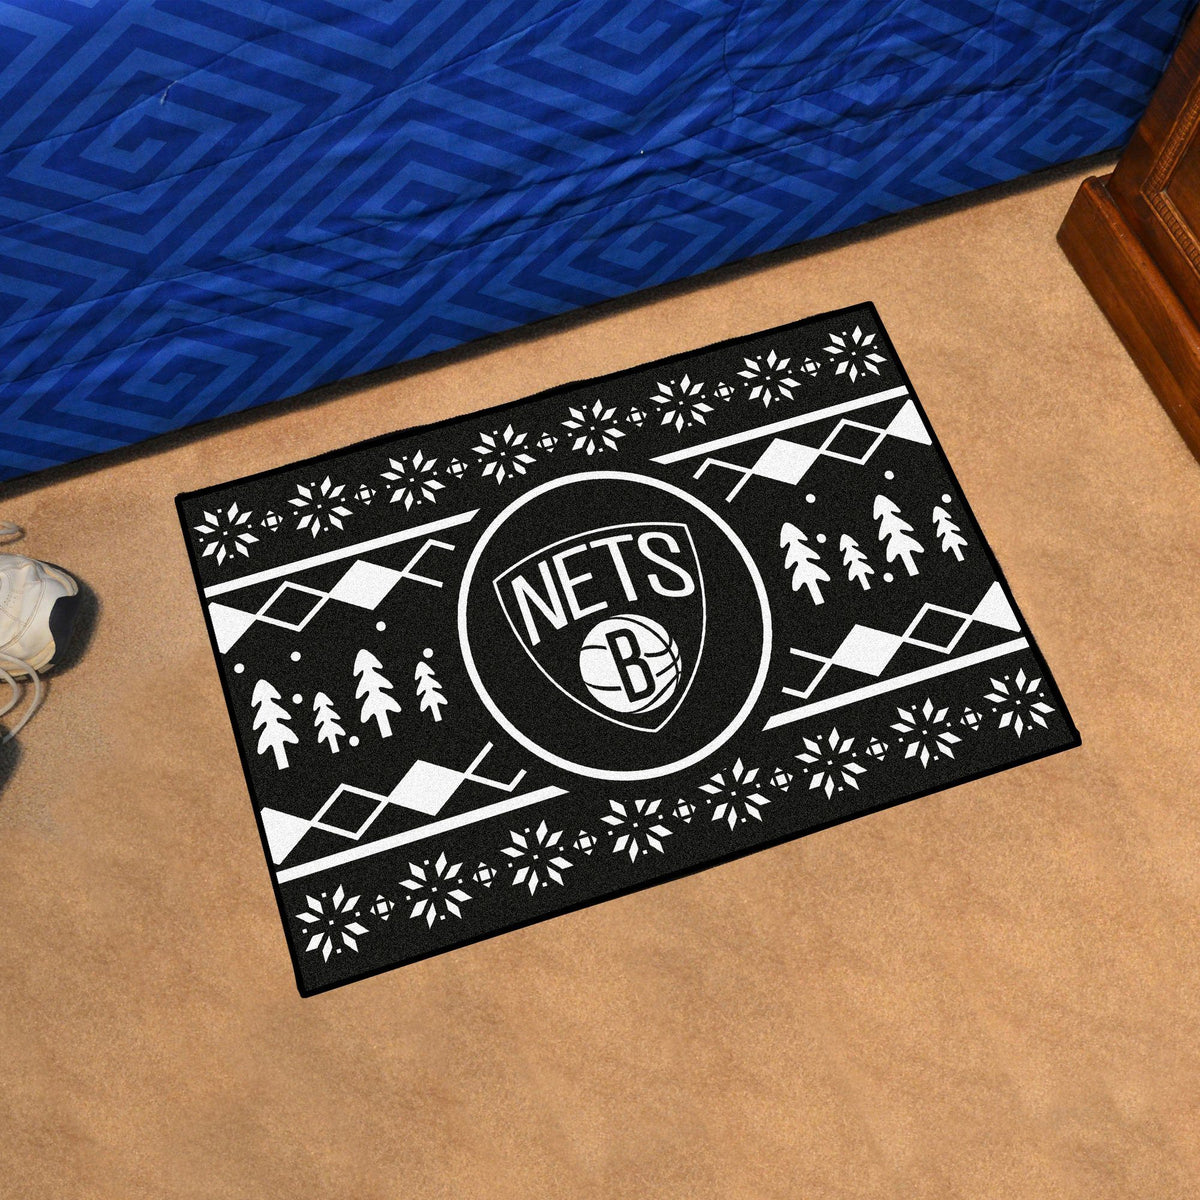 NBA - Holiday Sweater Starter Mat NBA Mats, Rectangular Mats, Holiday Sweater Starter Mat, NBA, Home Fan Mats Brooklyn Nets